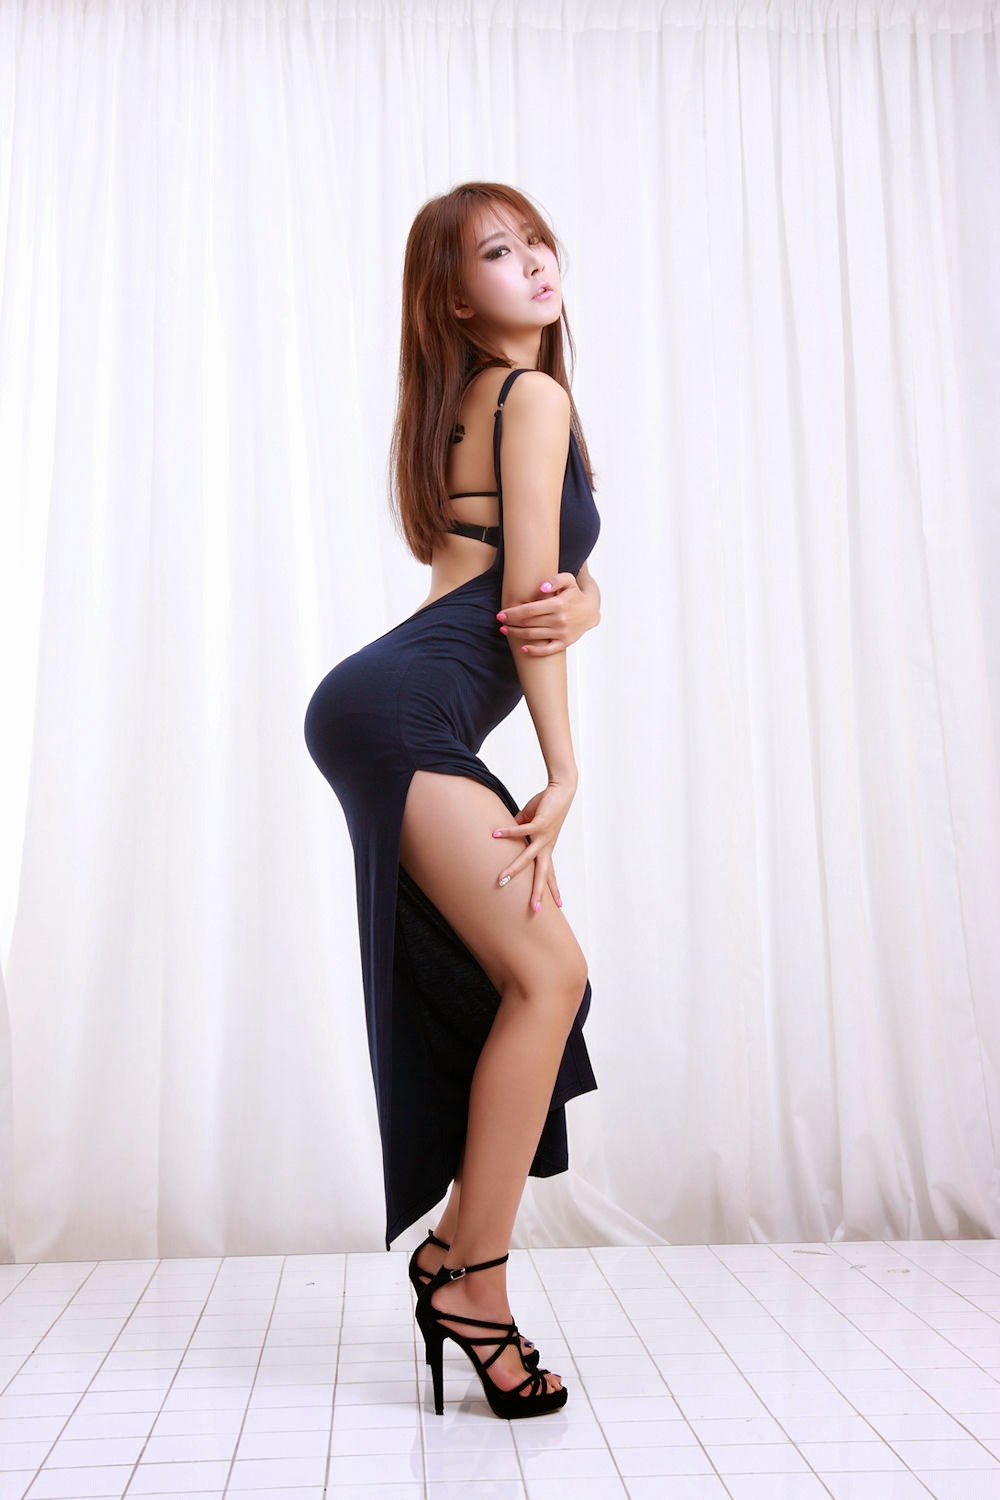 4 Park Hyun Sun  - very cute asian girl-girlcute4u.blogspot.com